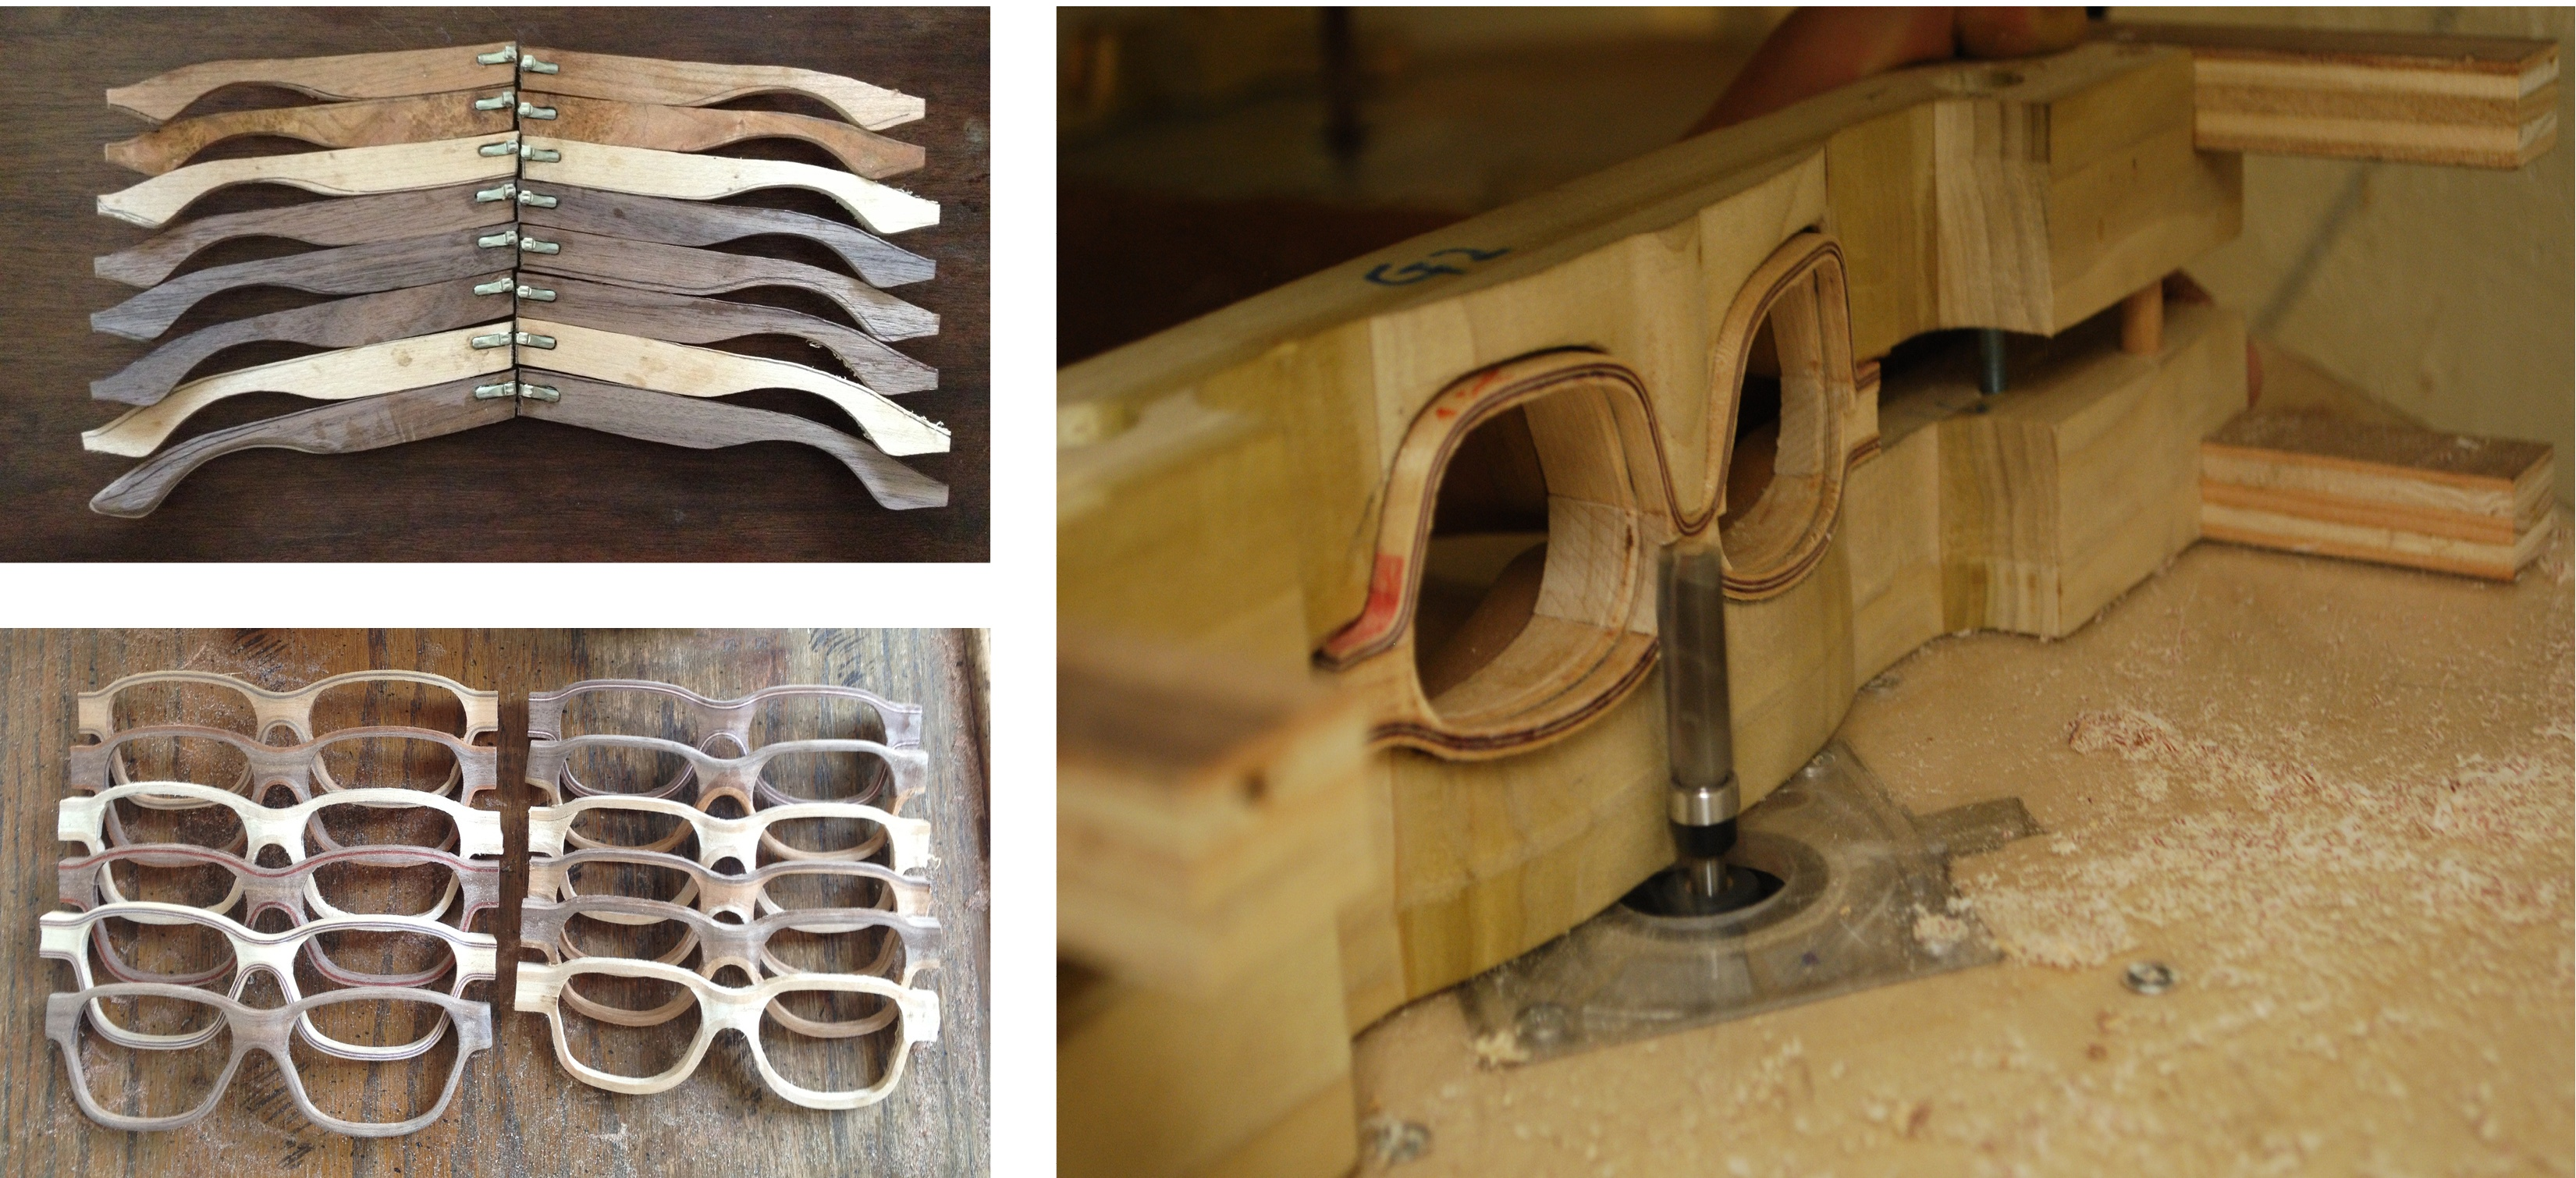 After veneer is bent into blanks a series of jigs are used to cut them into shape